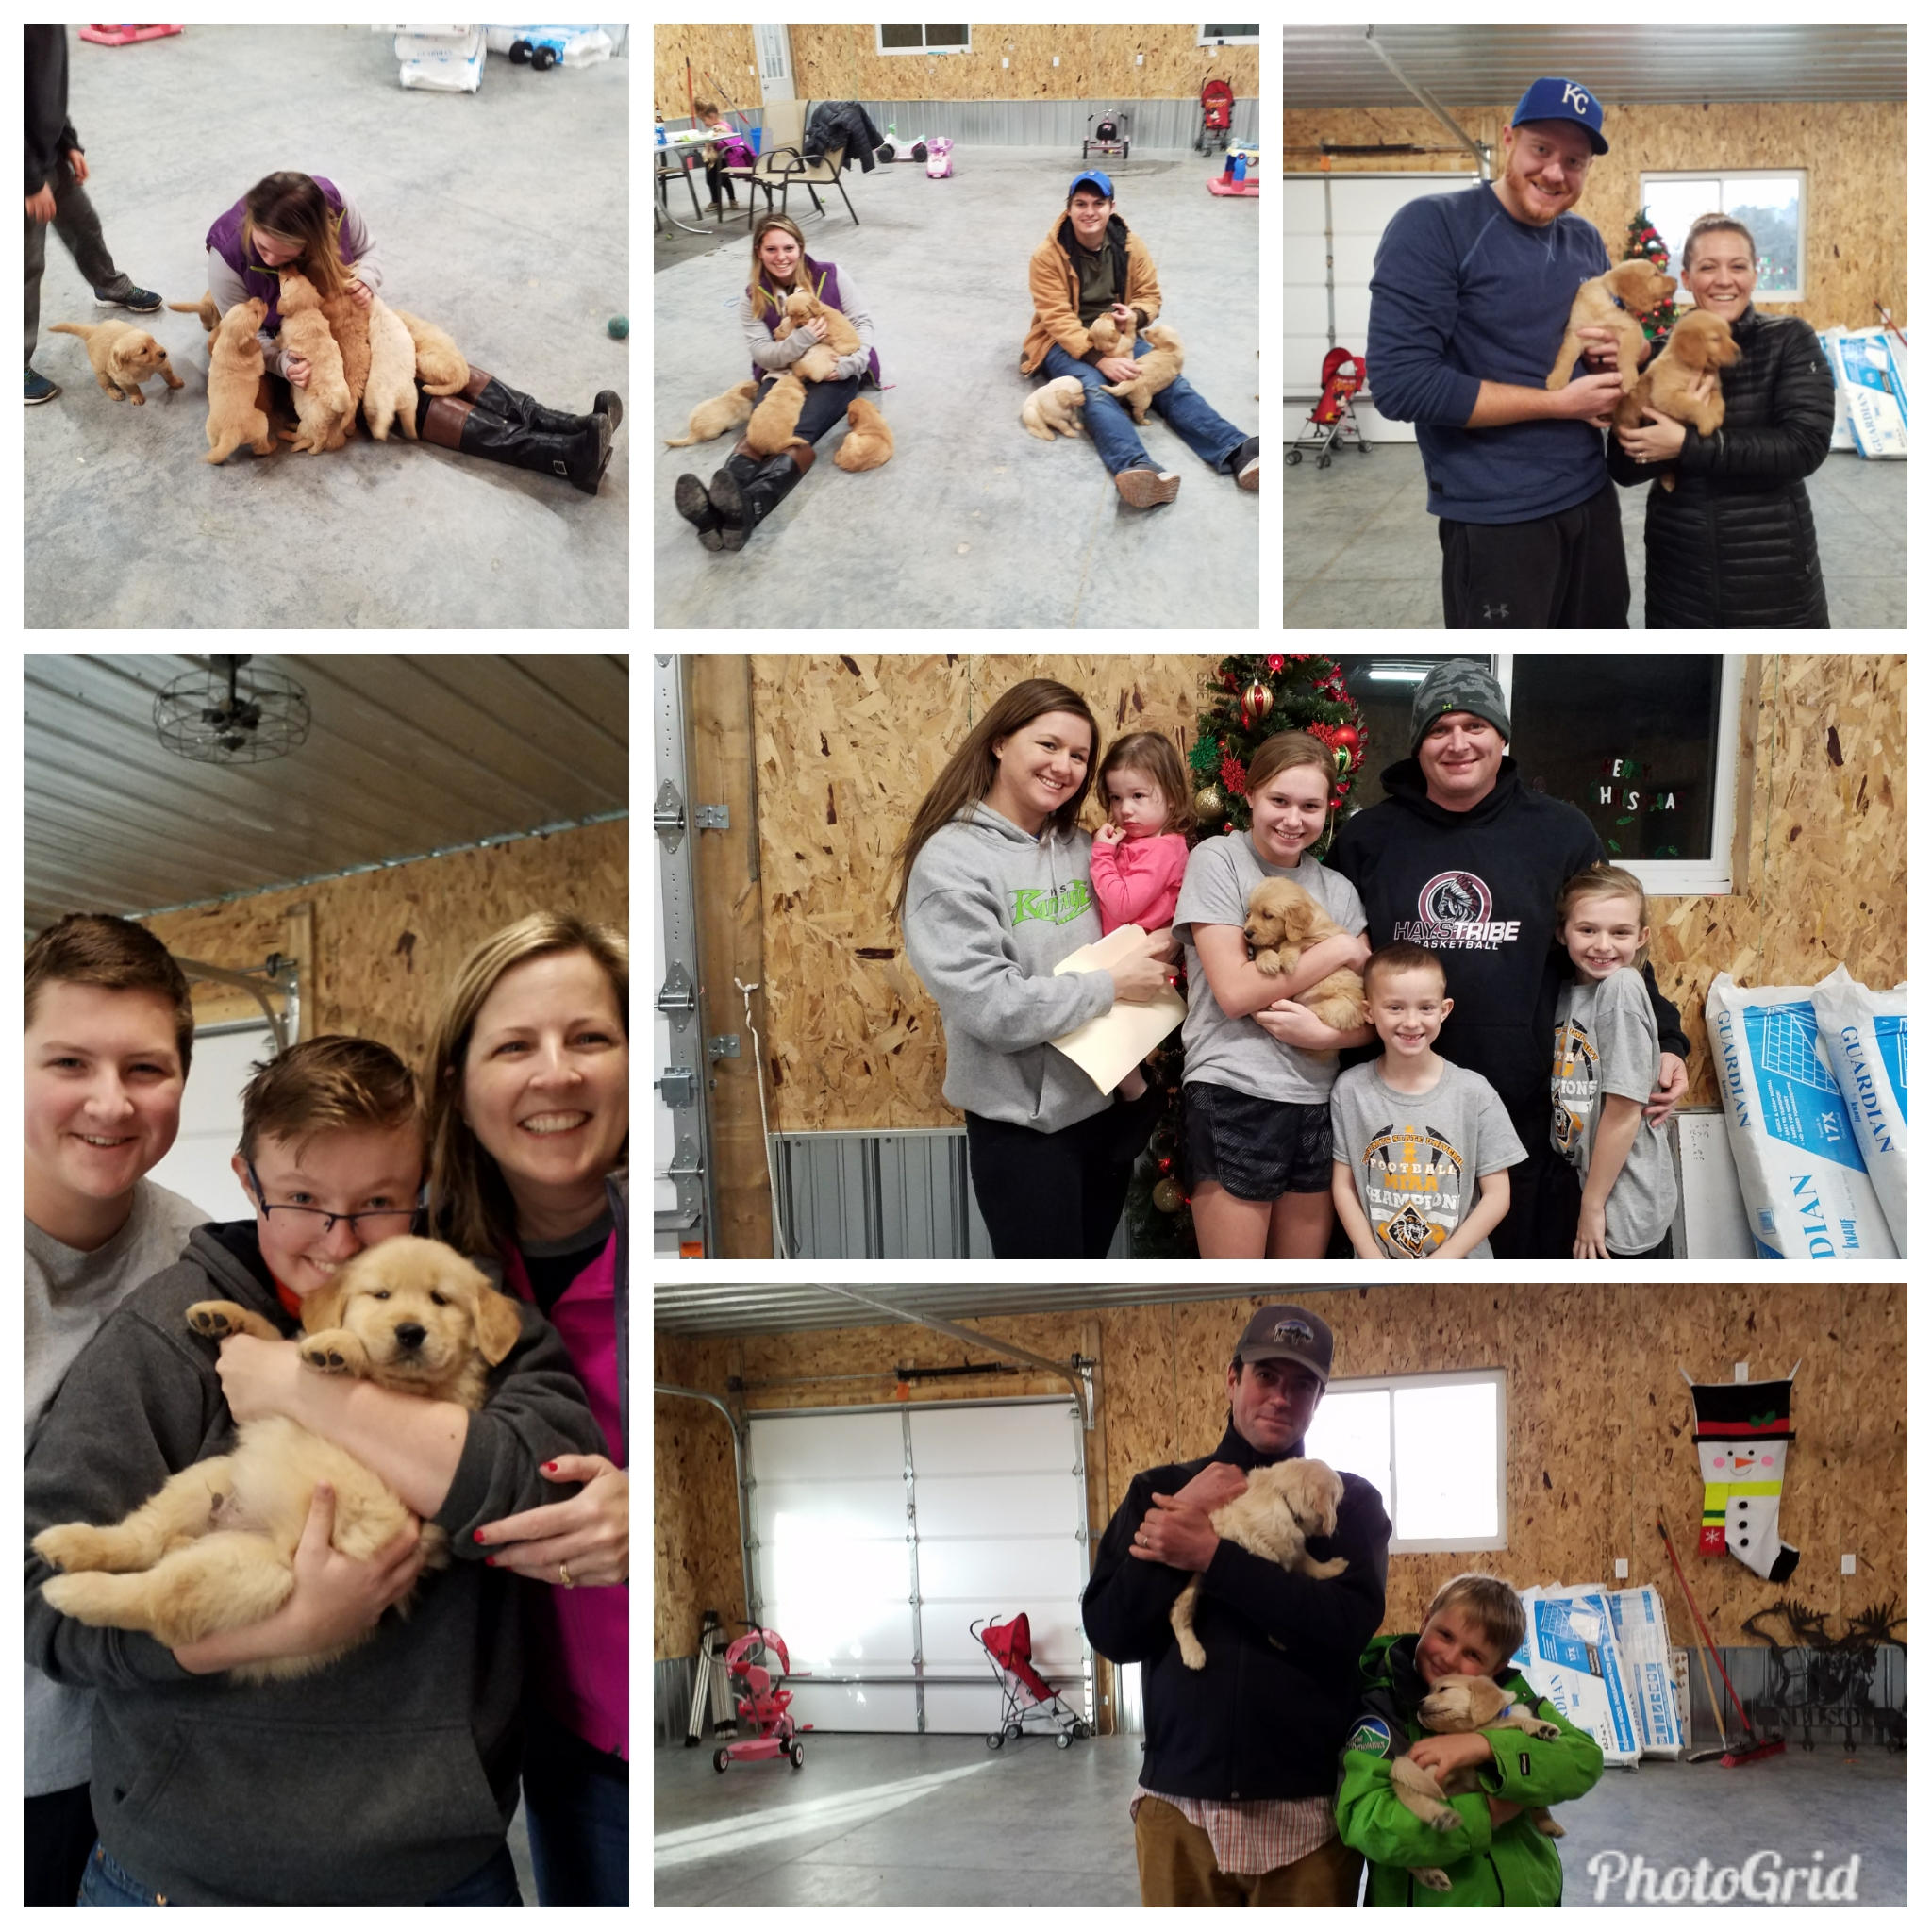 Here's how new owners pick their puppies.  Our puppies are used to us handling them. When they are old enough to have their adopted families come see them, they are welcoming to cuddling and play time by everyone.